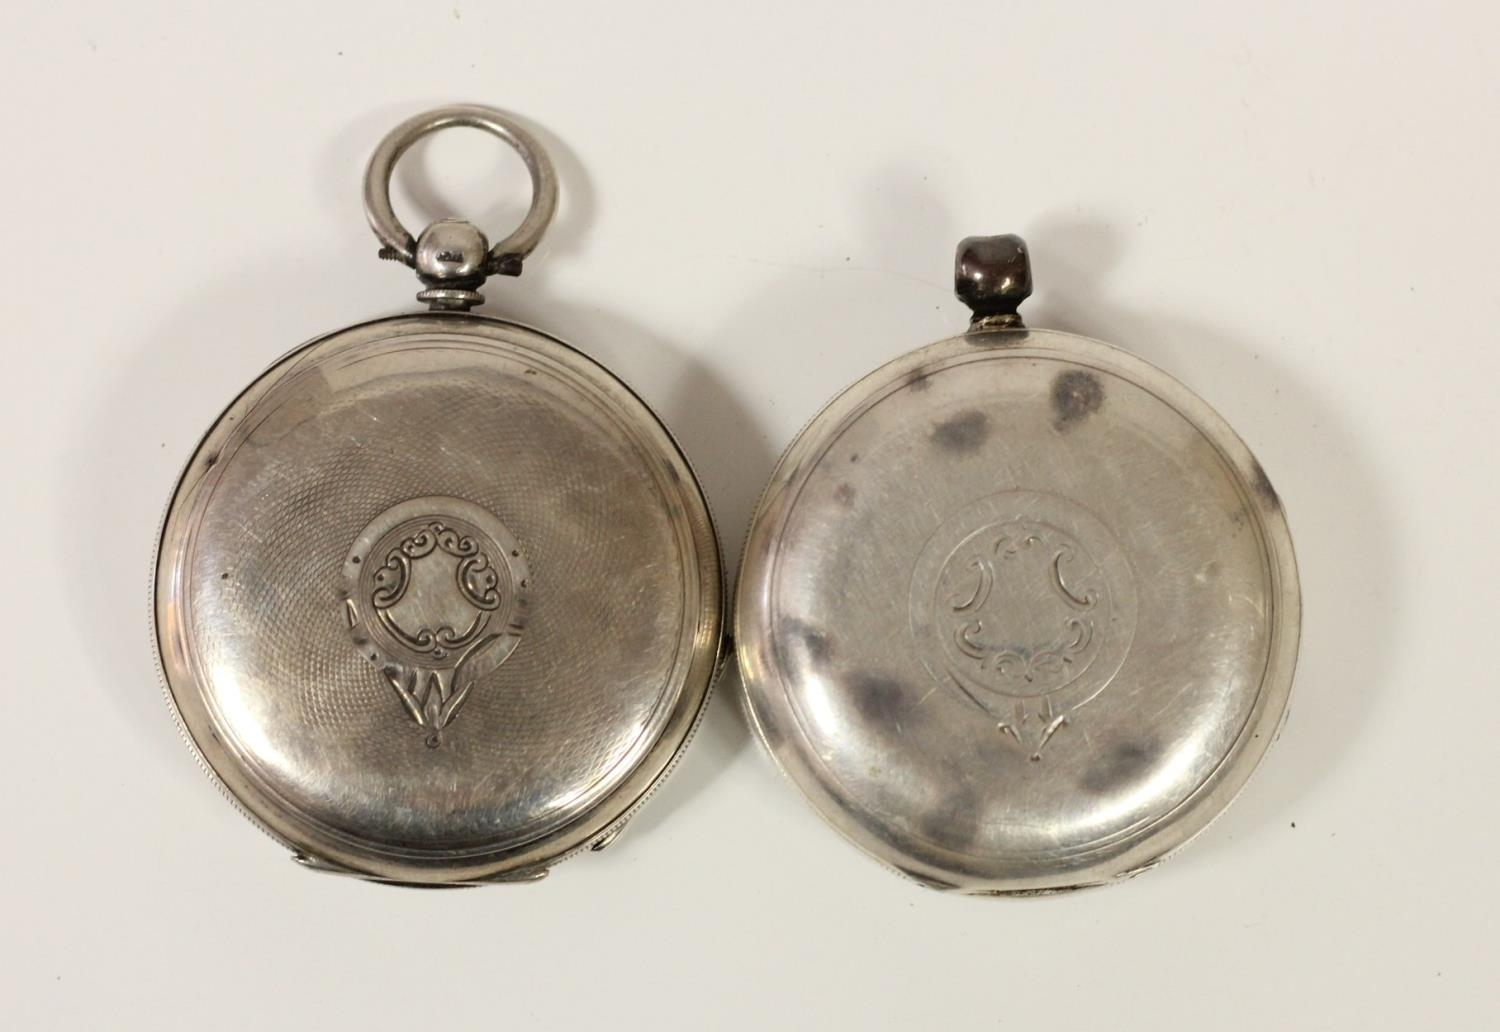 J.G. Graves, Sheffield, a silver open face key wind pocket watch, Chester 1899 and another silver - Image 4 of 4